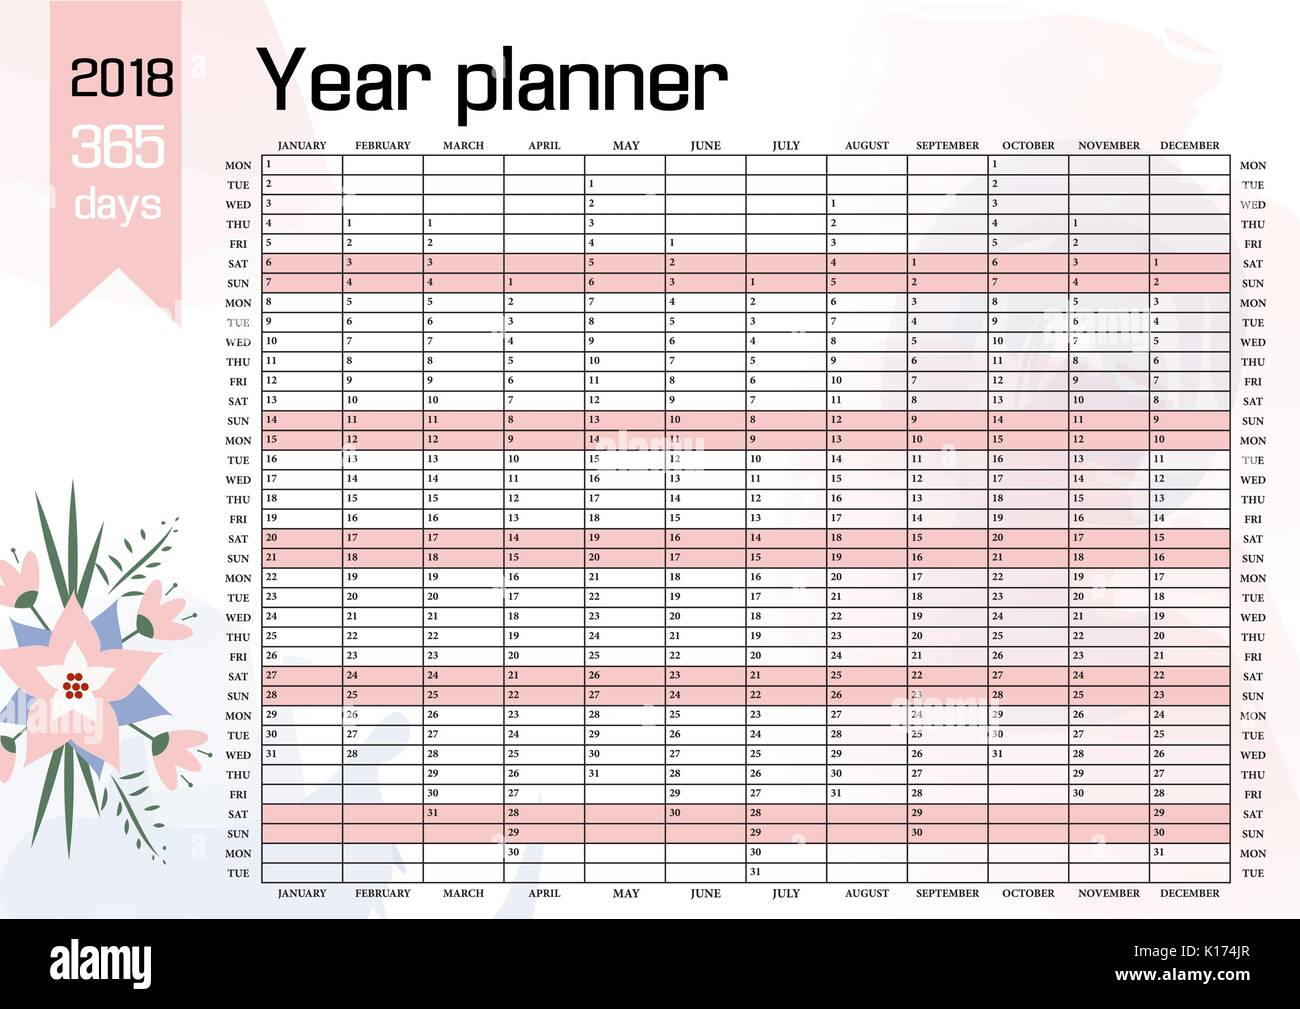 This calendar planner makes a useful staff holiday planner and like many planners it has calendar uk dates and is a fine free year planner template and yearly planner for